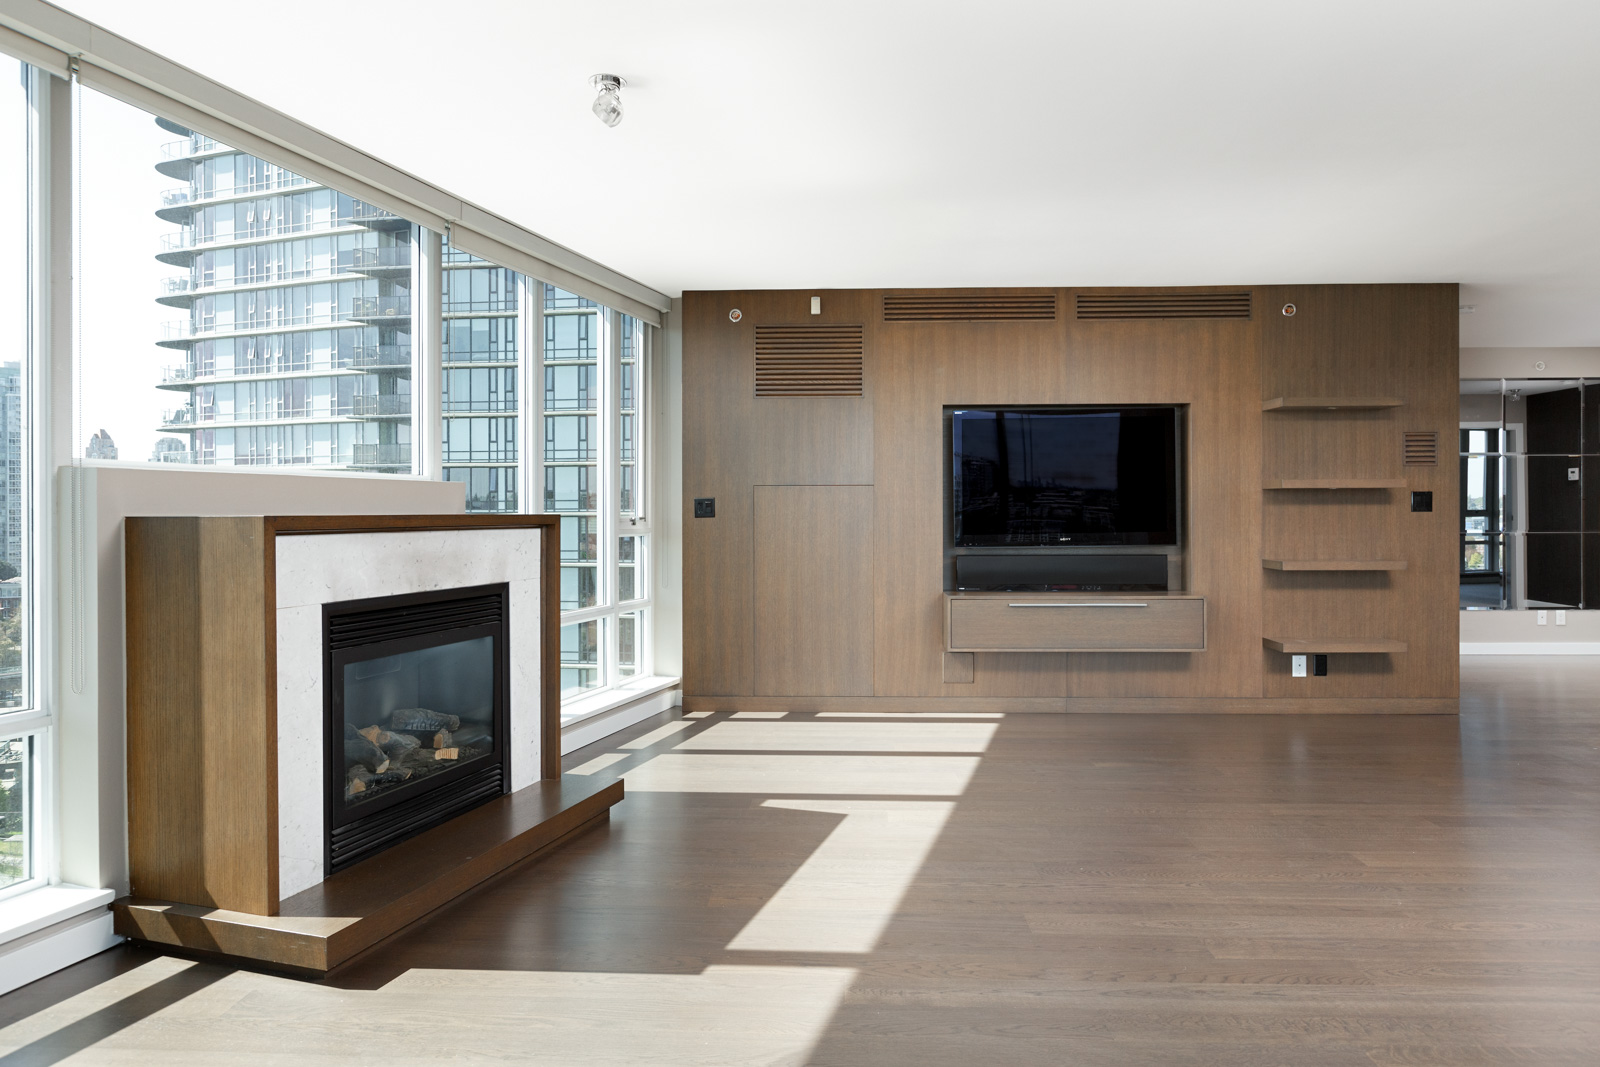 TV room in Vancouver rental condo with fireplace and floor-to-ceiling windows overlooking Vancouver city skyline.